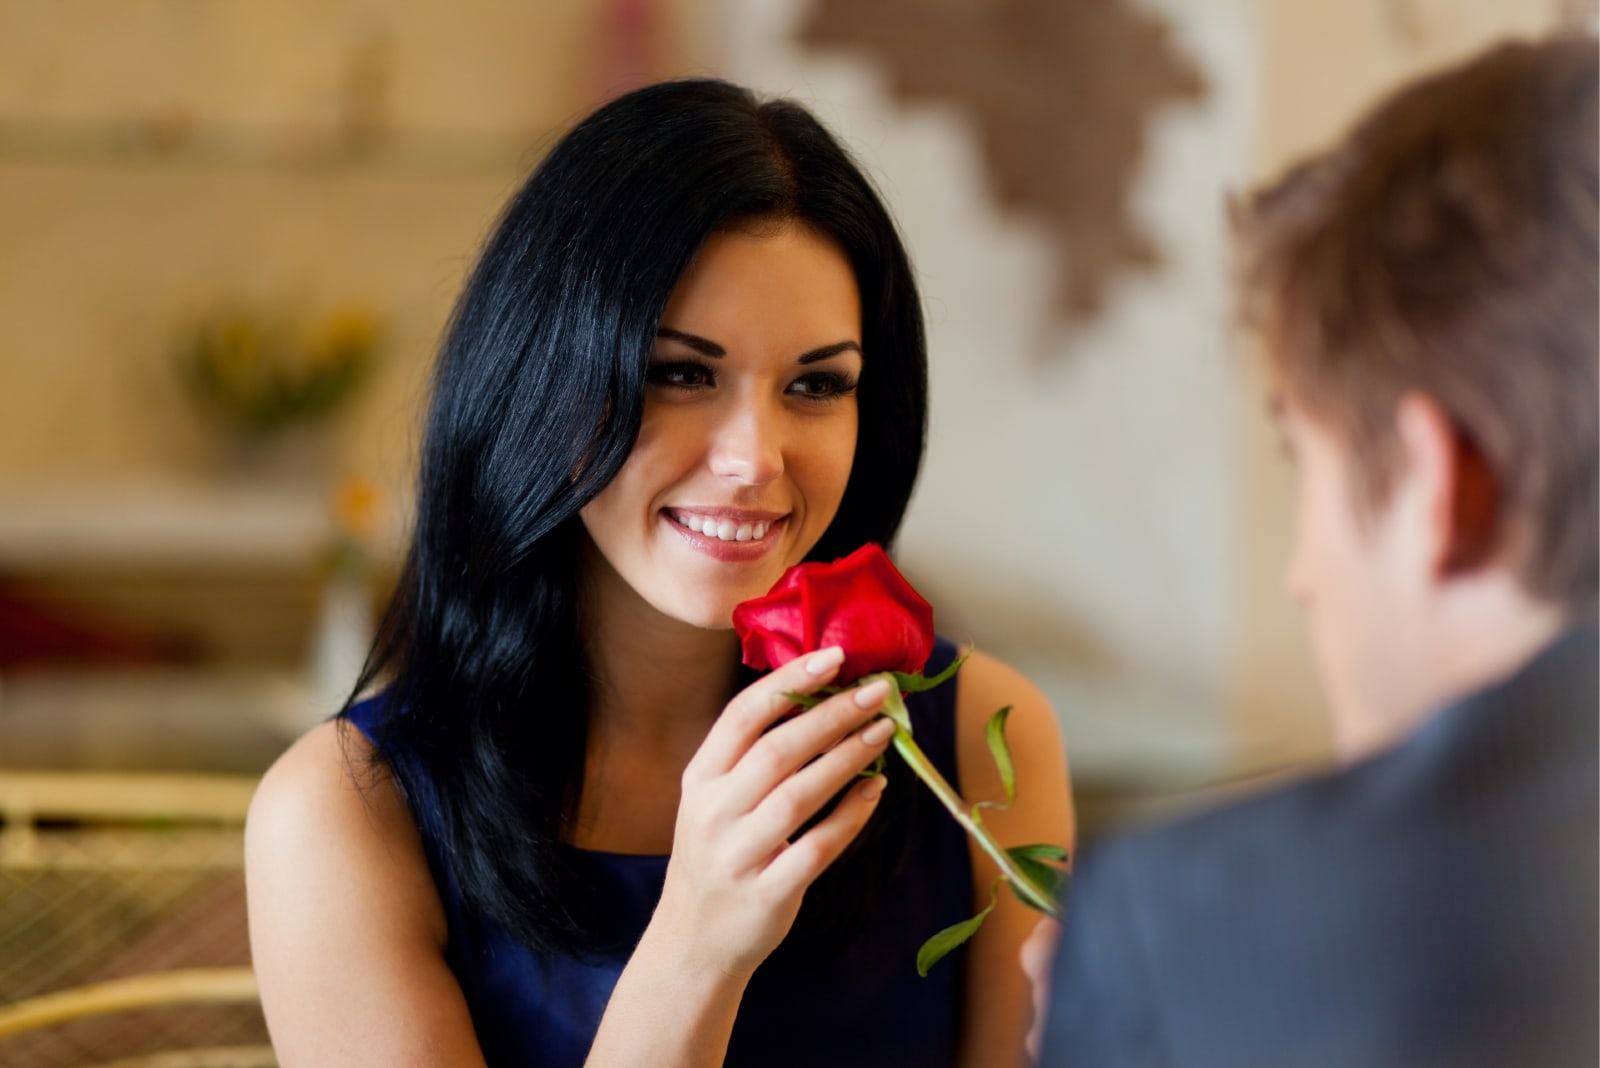 man giving red rose to woman while sitting at table